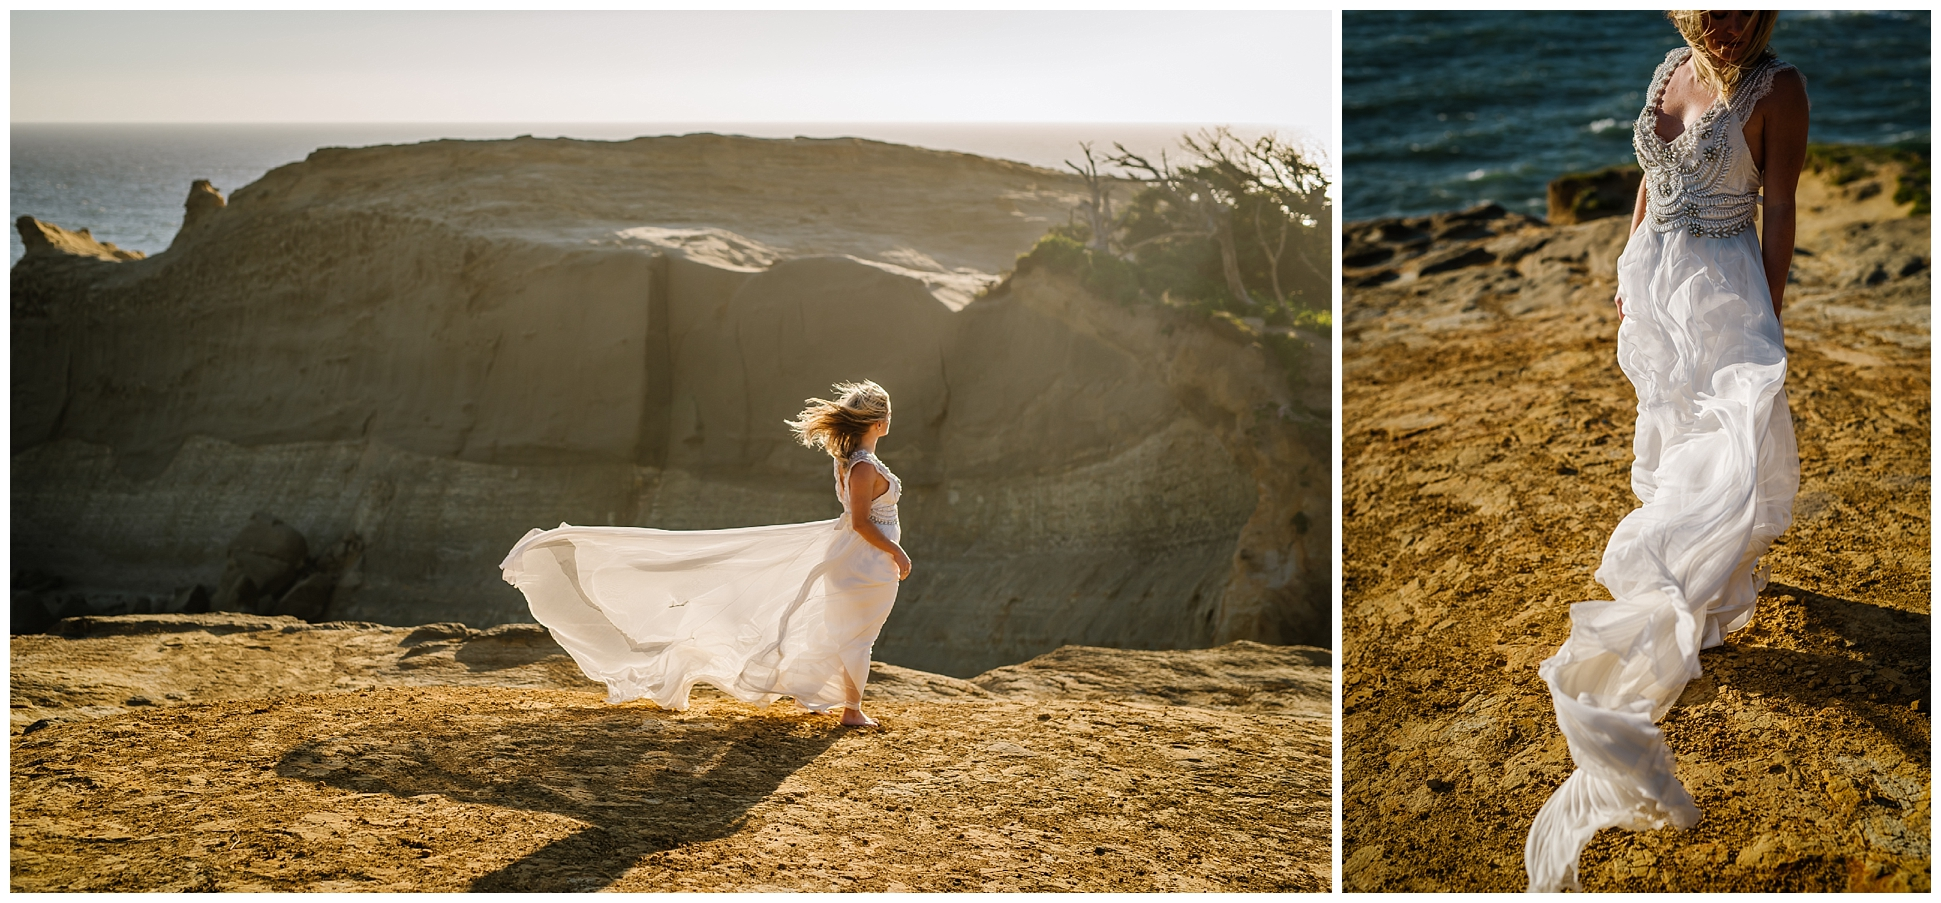 Cape-kiwanda-bridal-portrait-destination-wedding-photographer_0027.jpg